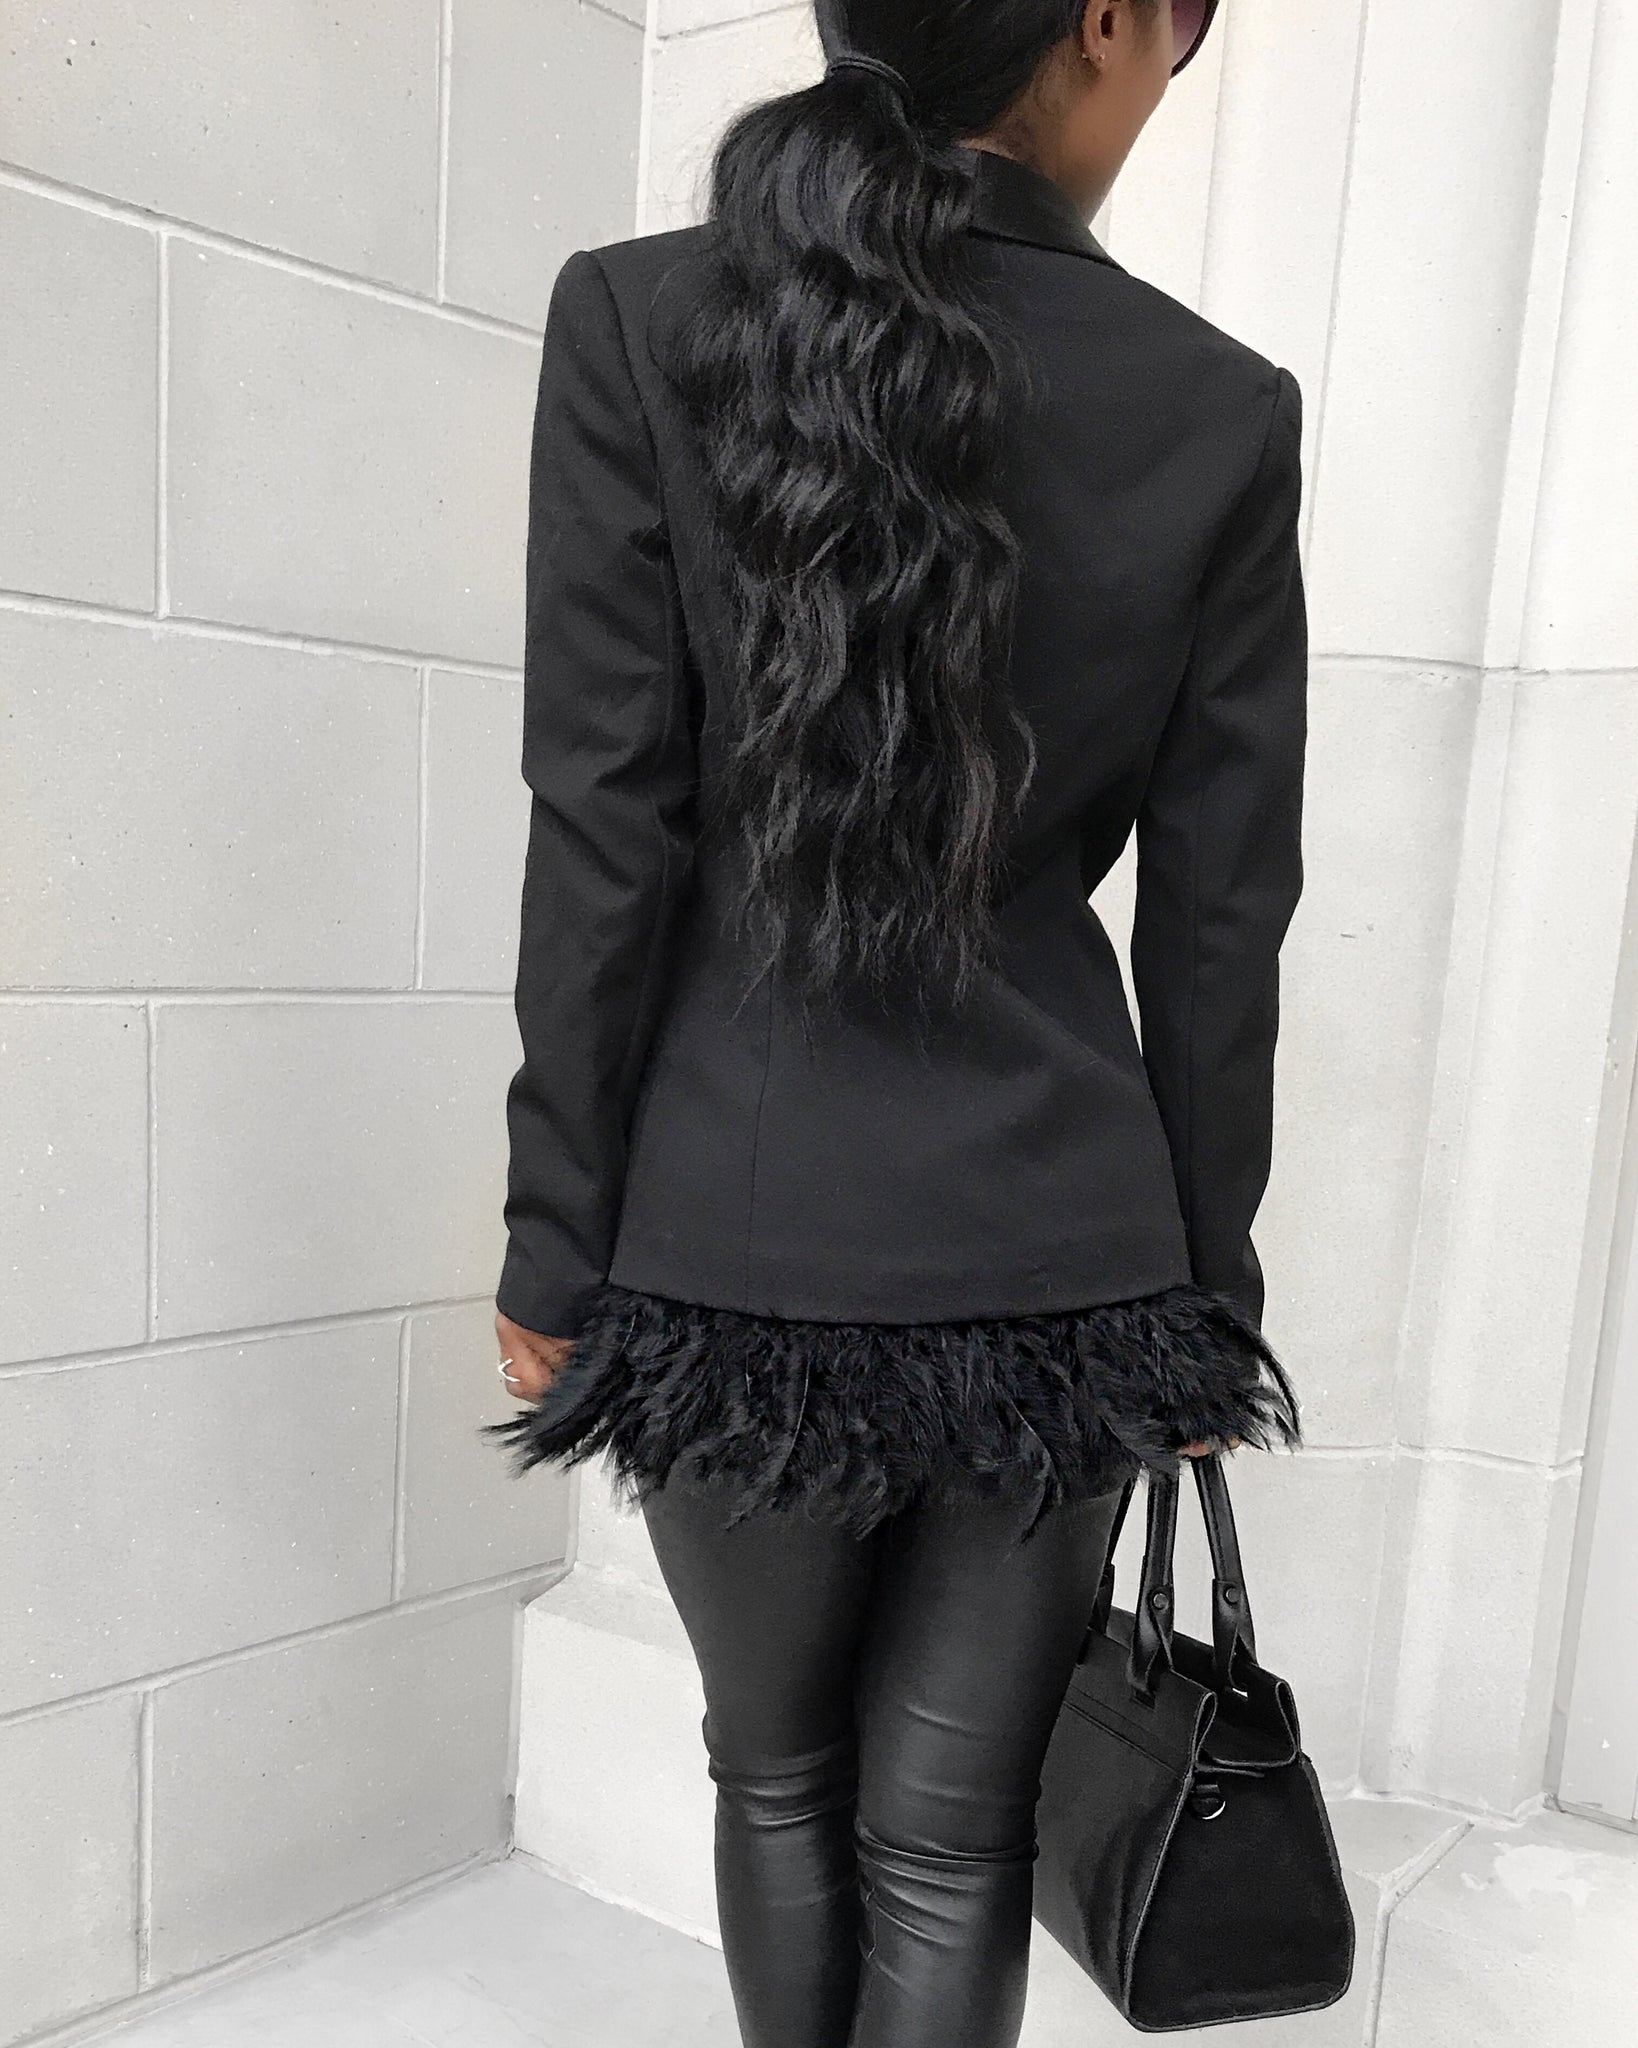 Black Blazer with Feathered Trimming